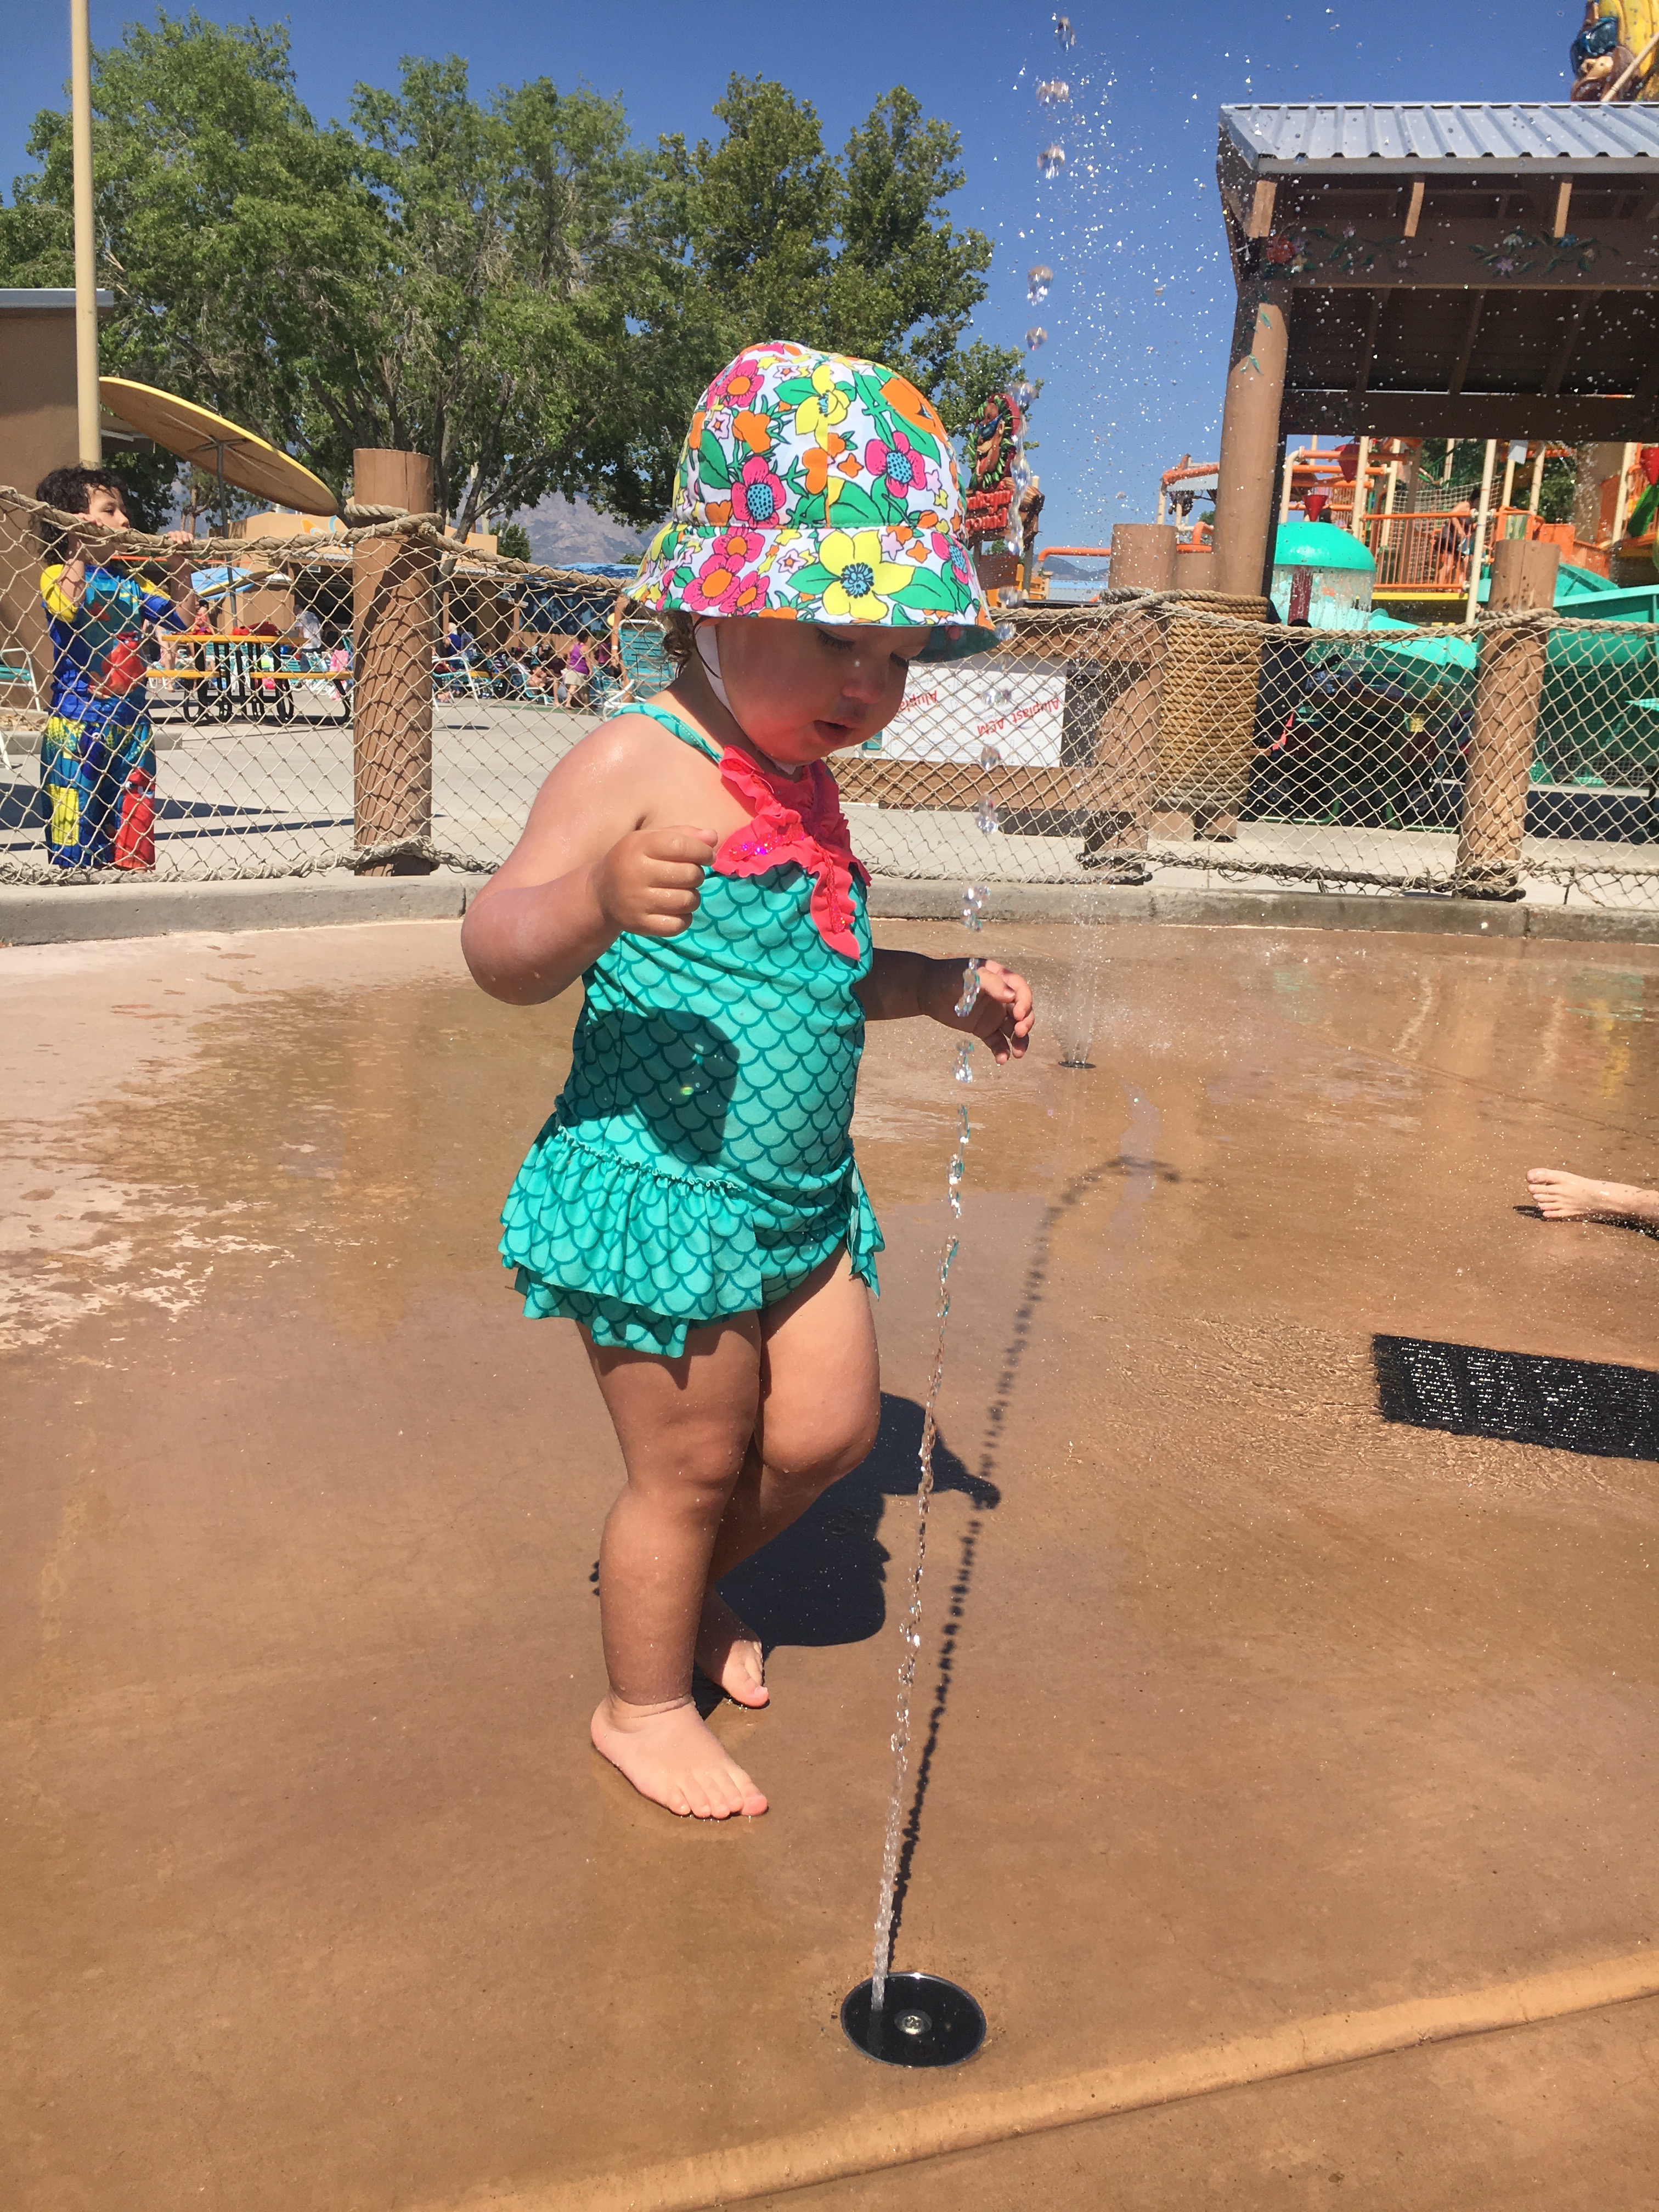 One of our favorite kids' activities in New Mexico was a trip to Cliff's Amusement Park to check out the Lil' Squirts area.